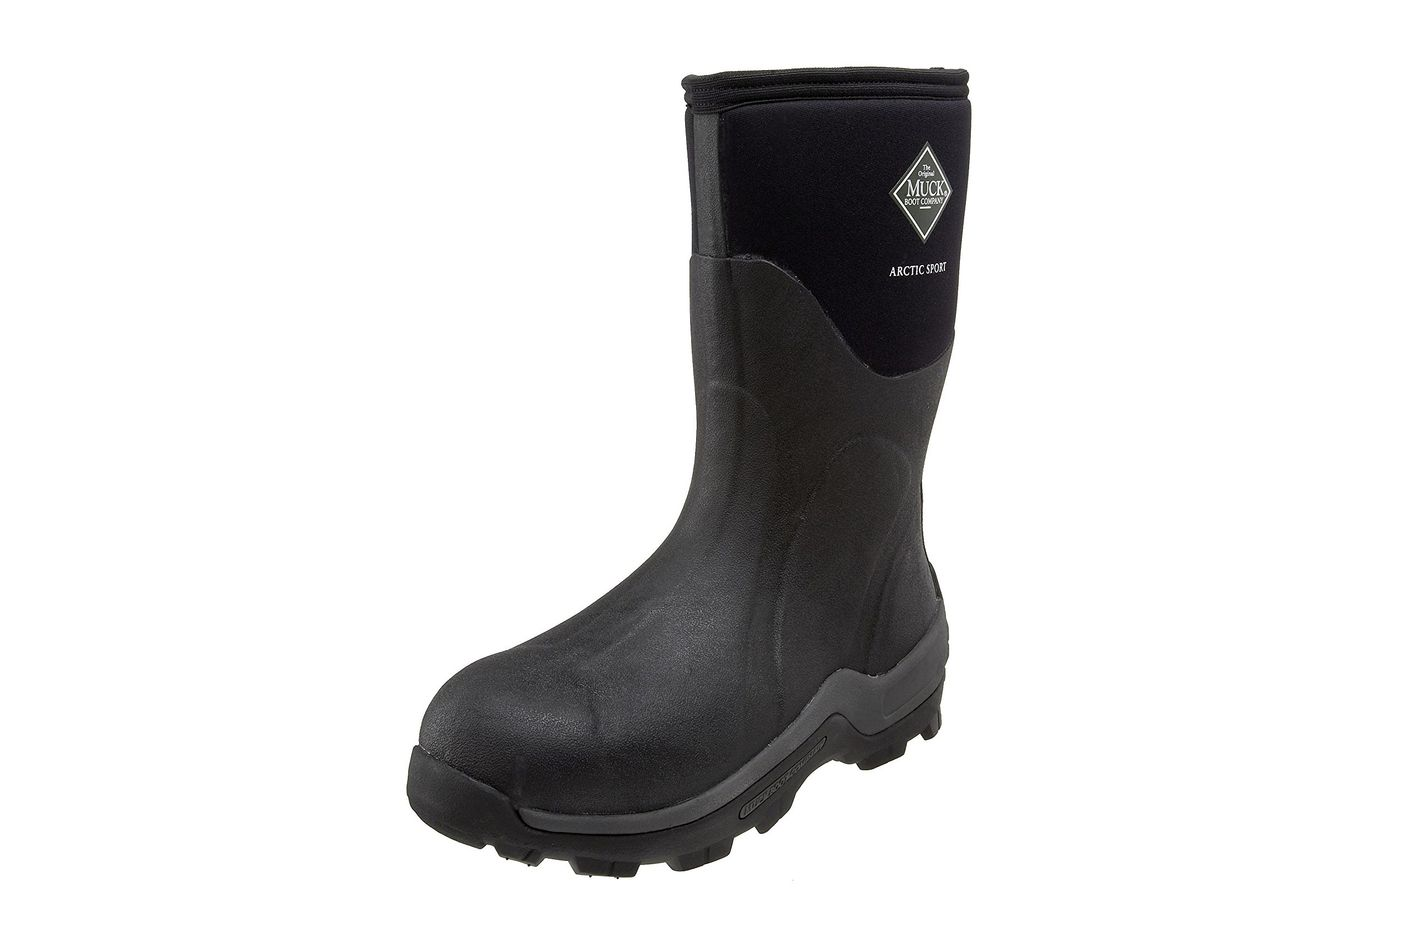 fe89e6a92028 The Original Muck Boots Arctic Sport Mid Outdoor Boot